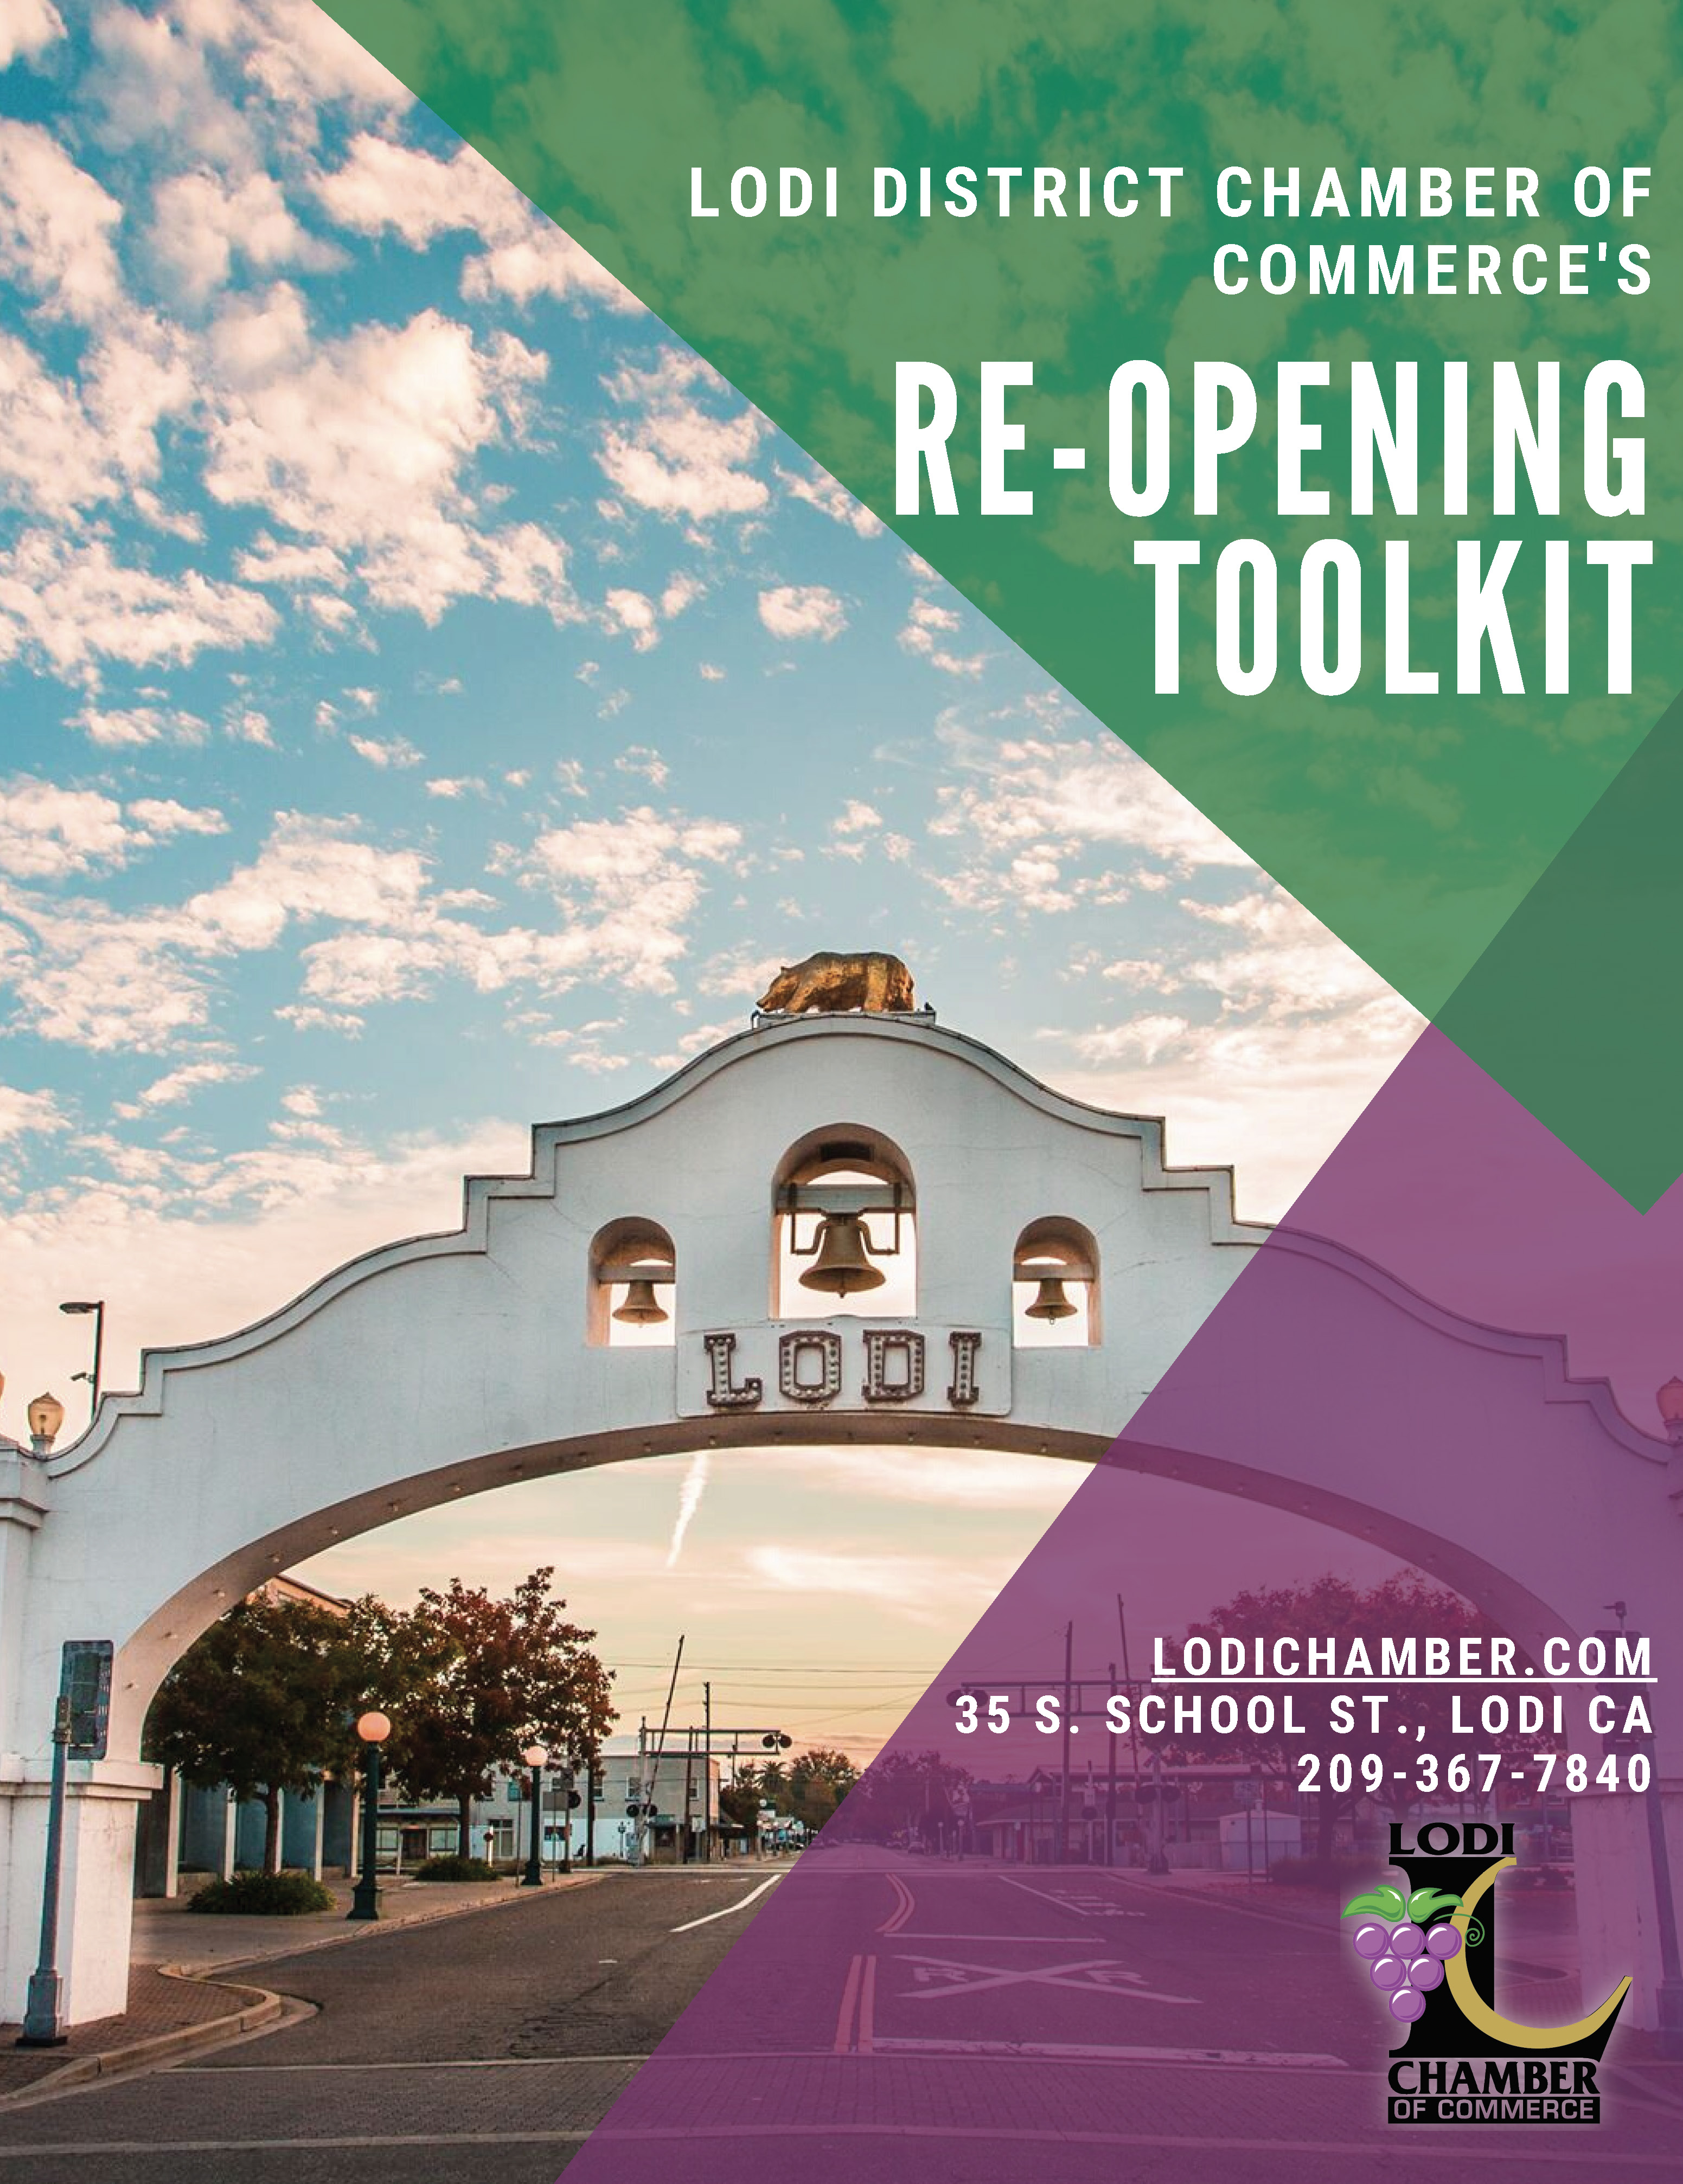 Re-Opening Toolkits